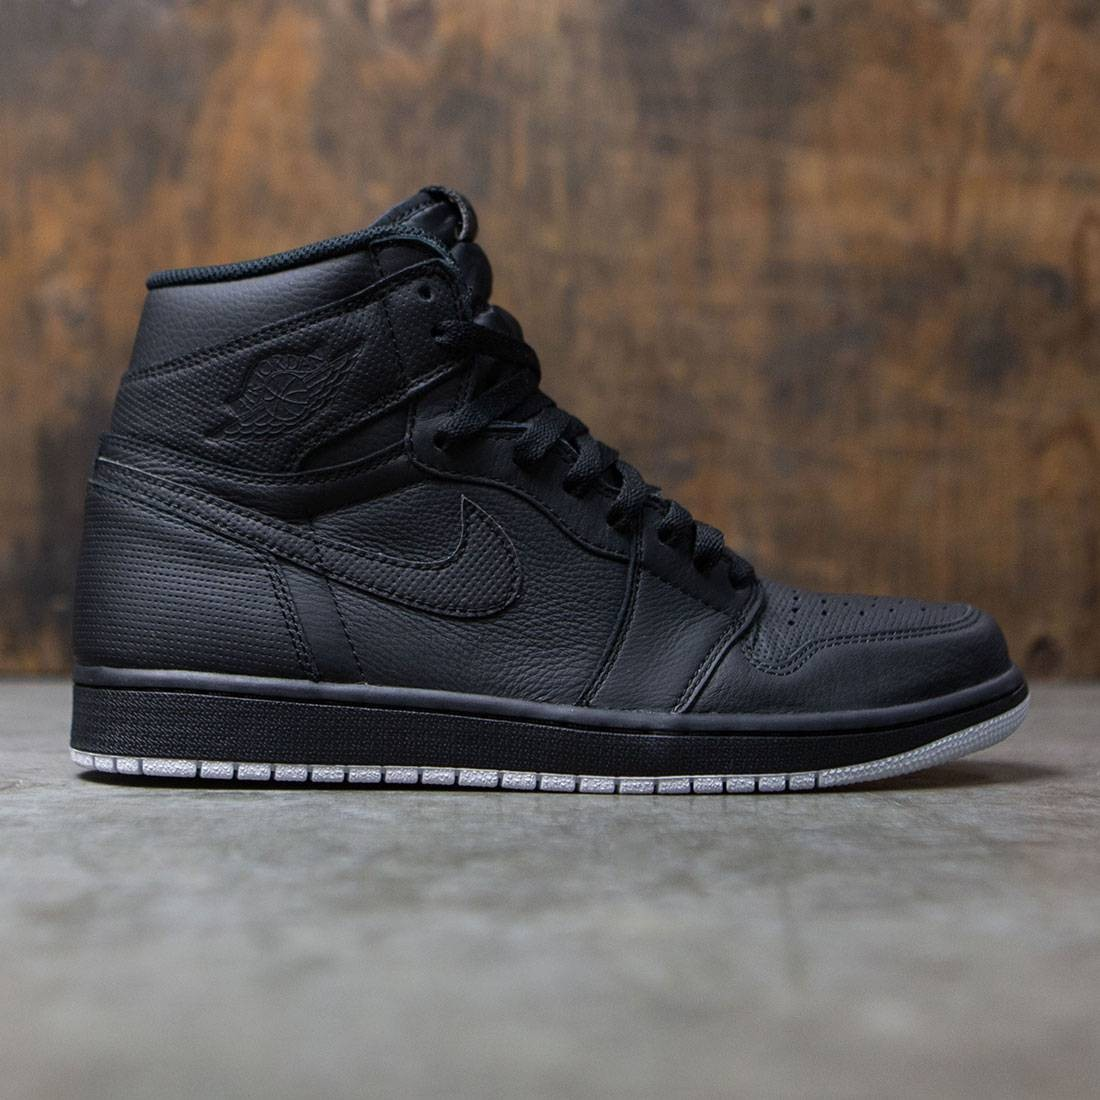 meet 8f973 2fc2a Air Jordan 1 Retro High OG Men (black / white-black)